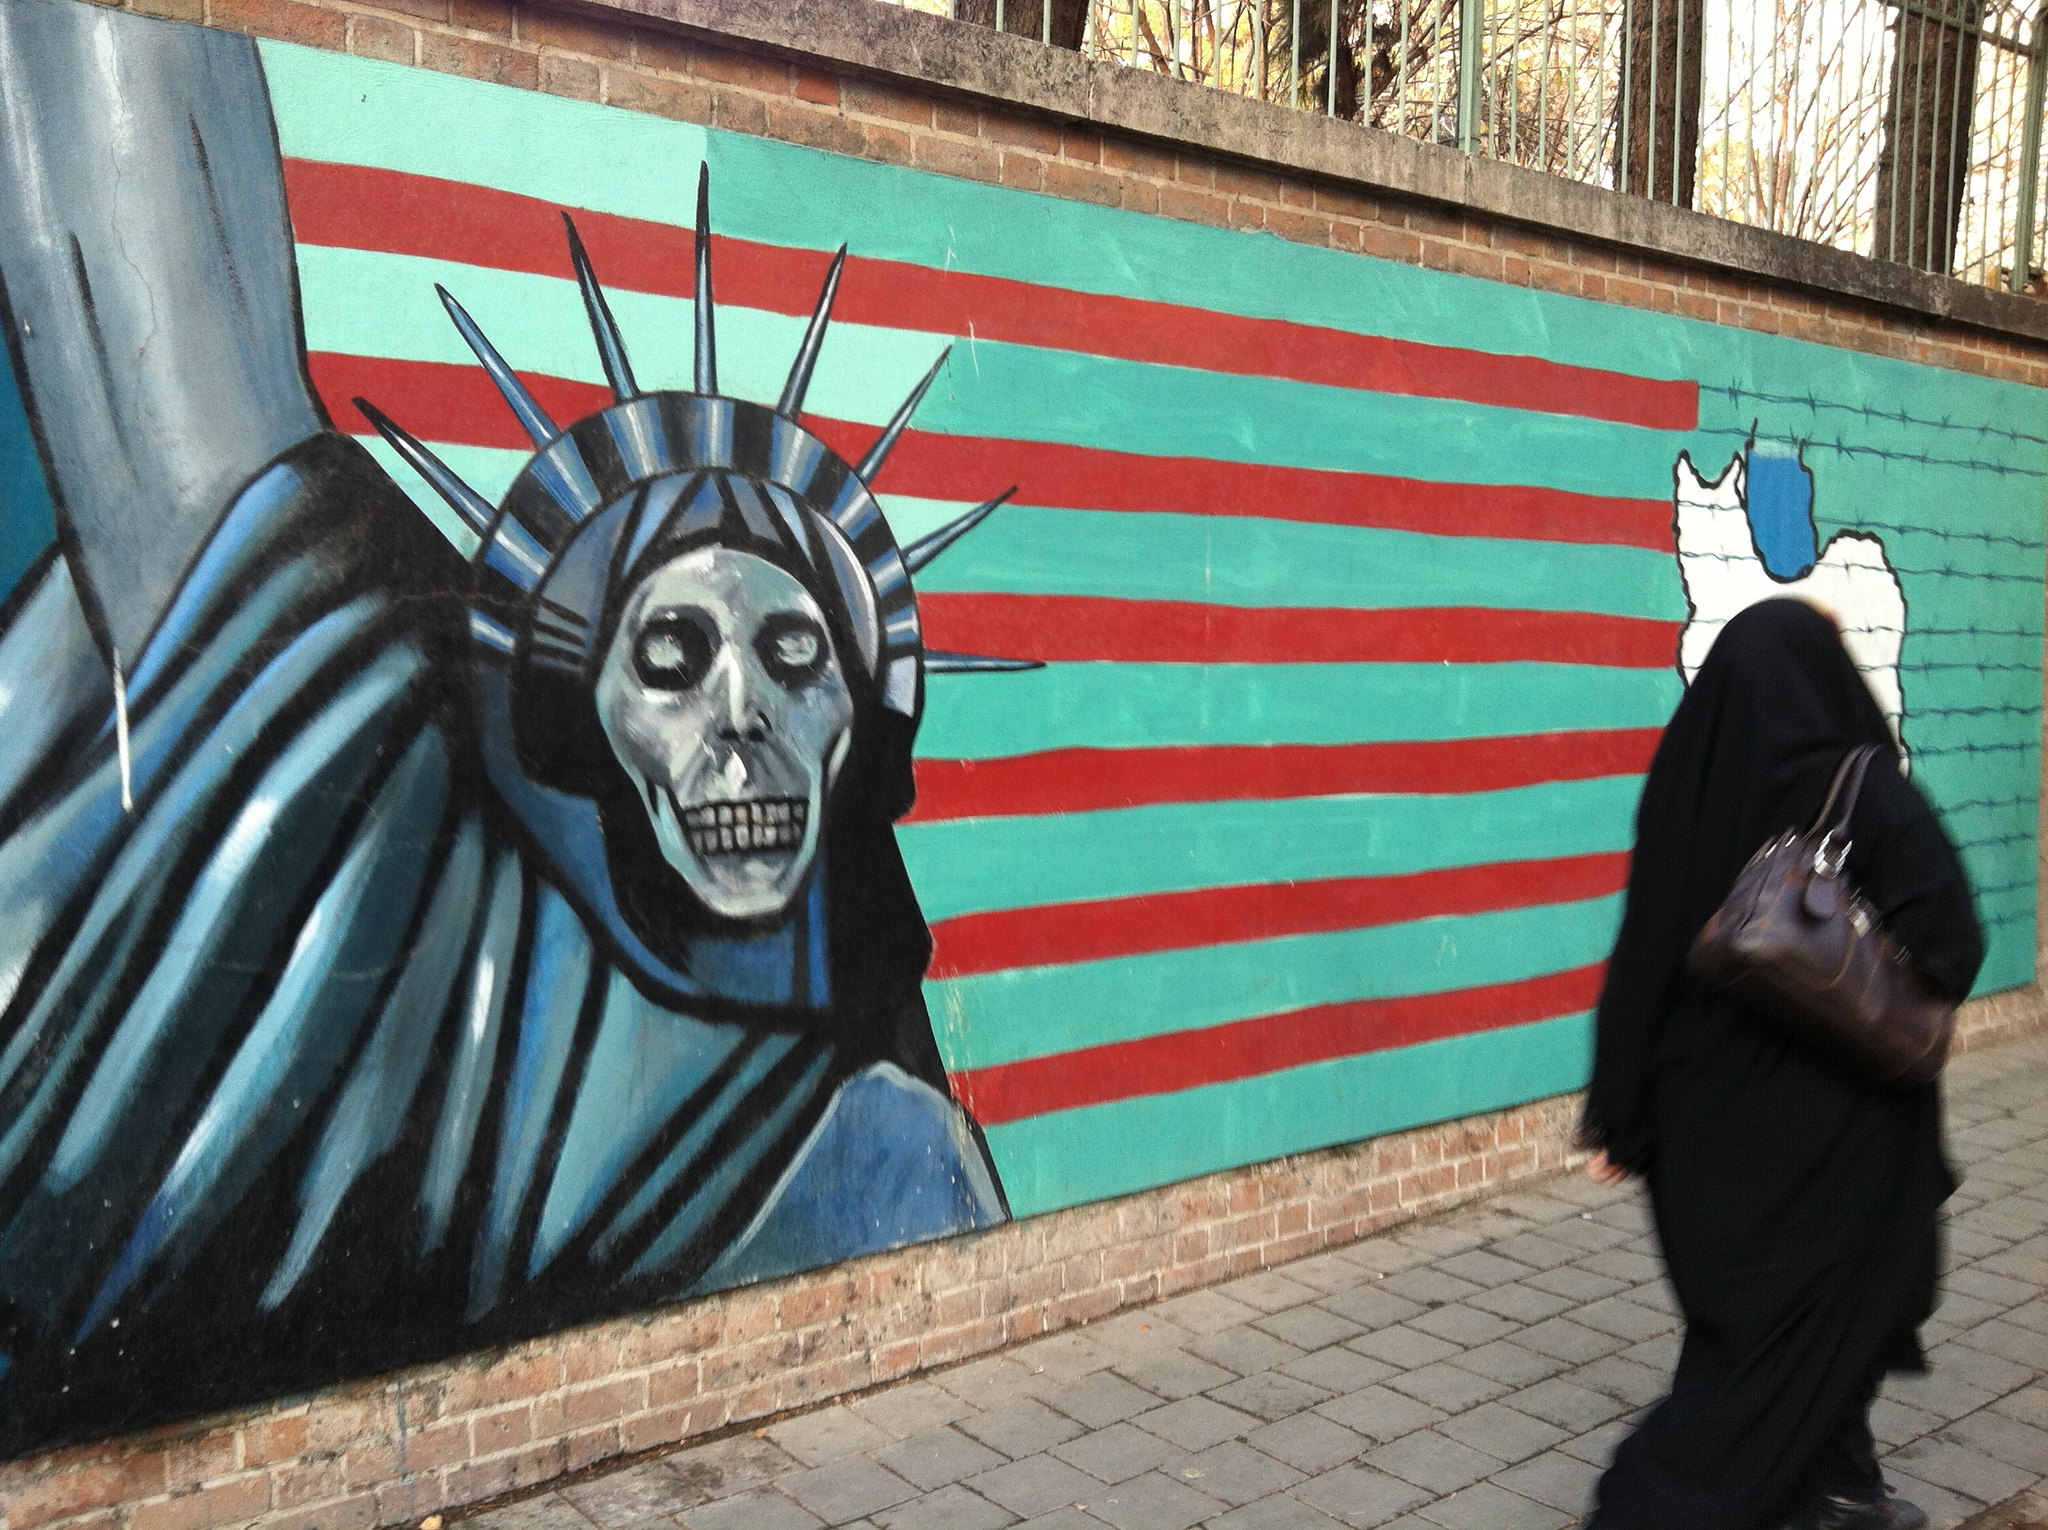 Wall of the former U.S. Embassy, Tehran, Iran